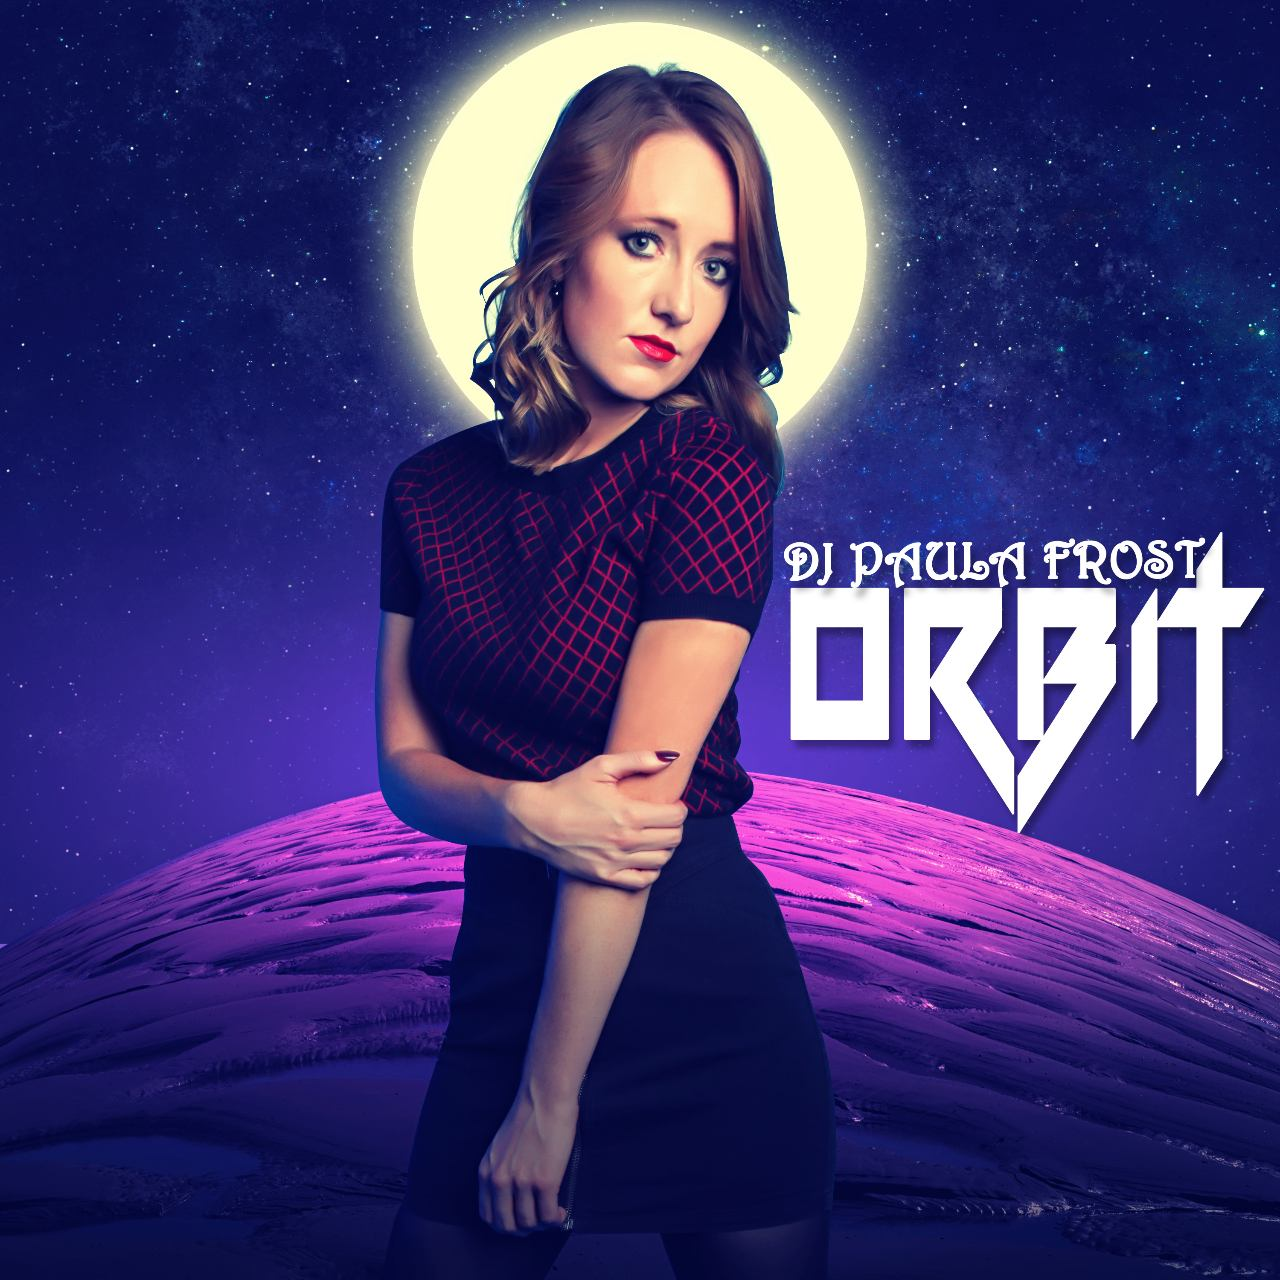 DJ PAULA FROST – ORBIT (SINGLE DOWNLOAD)